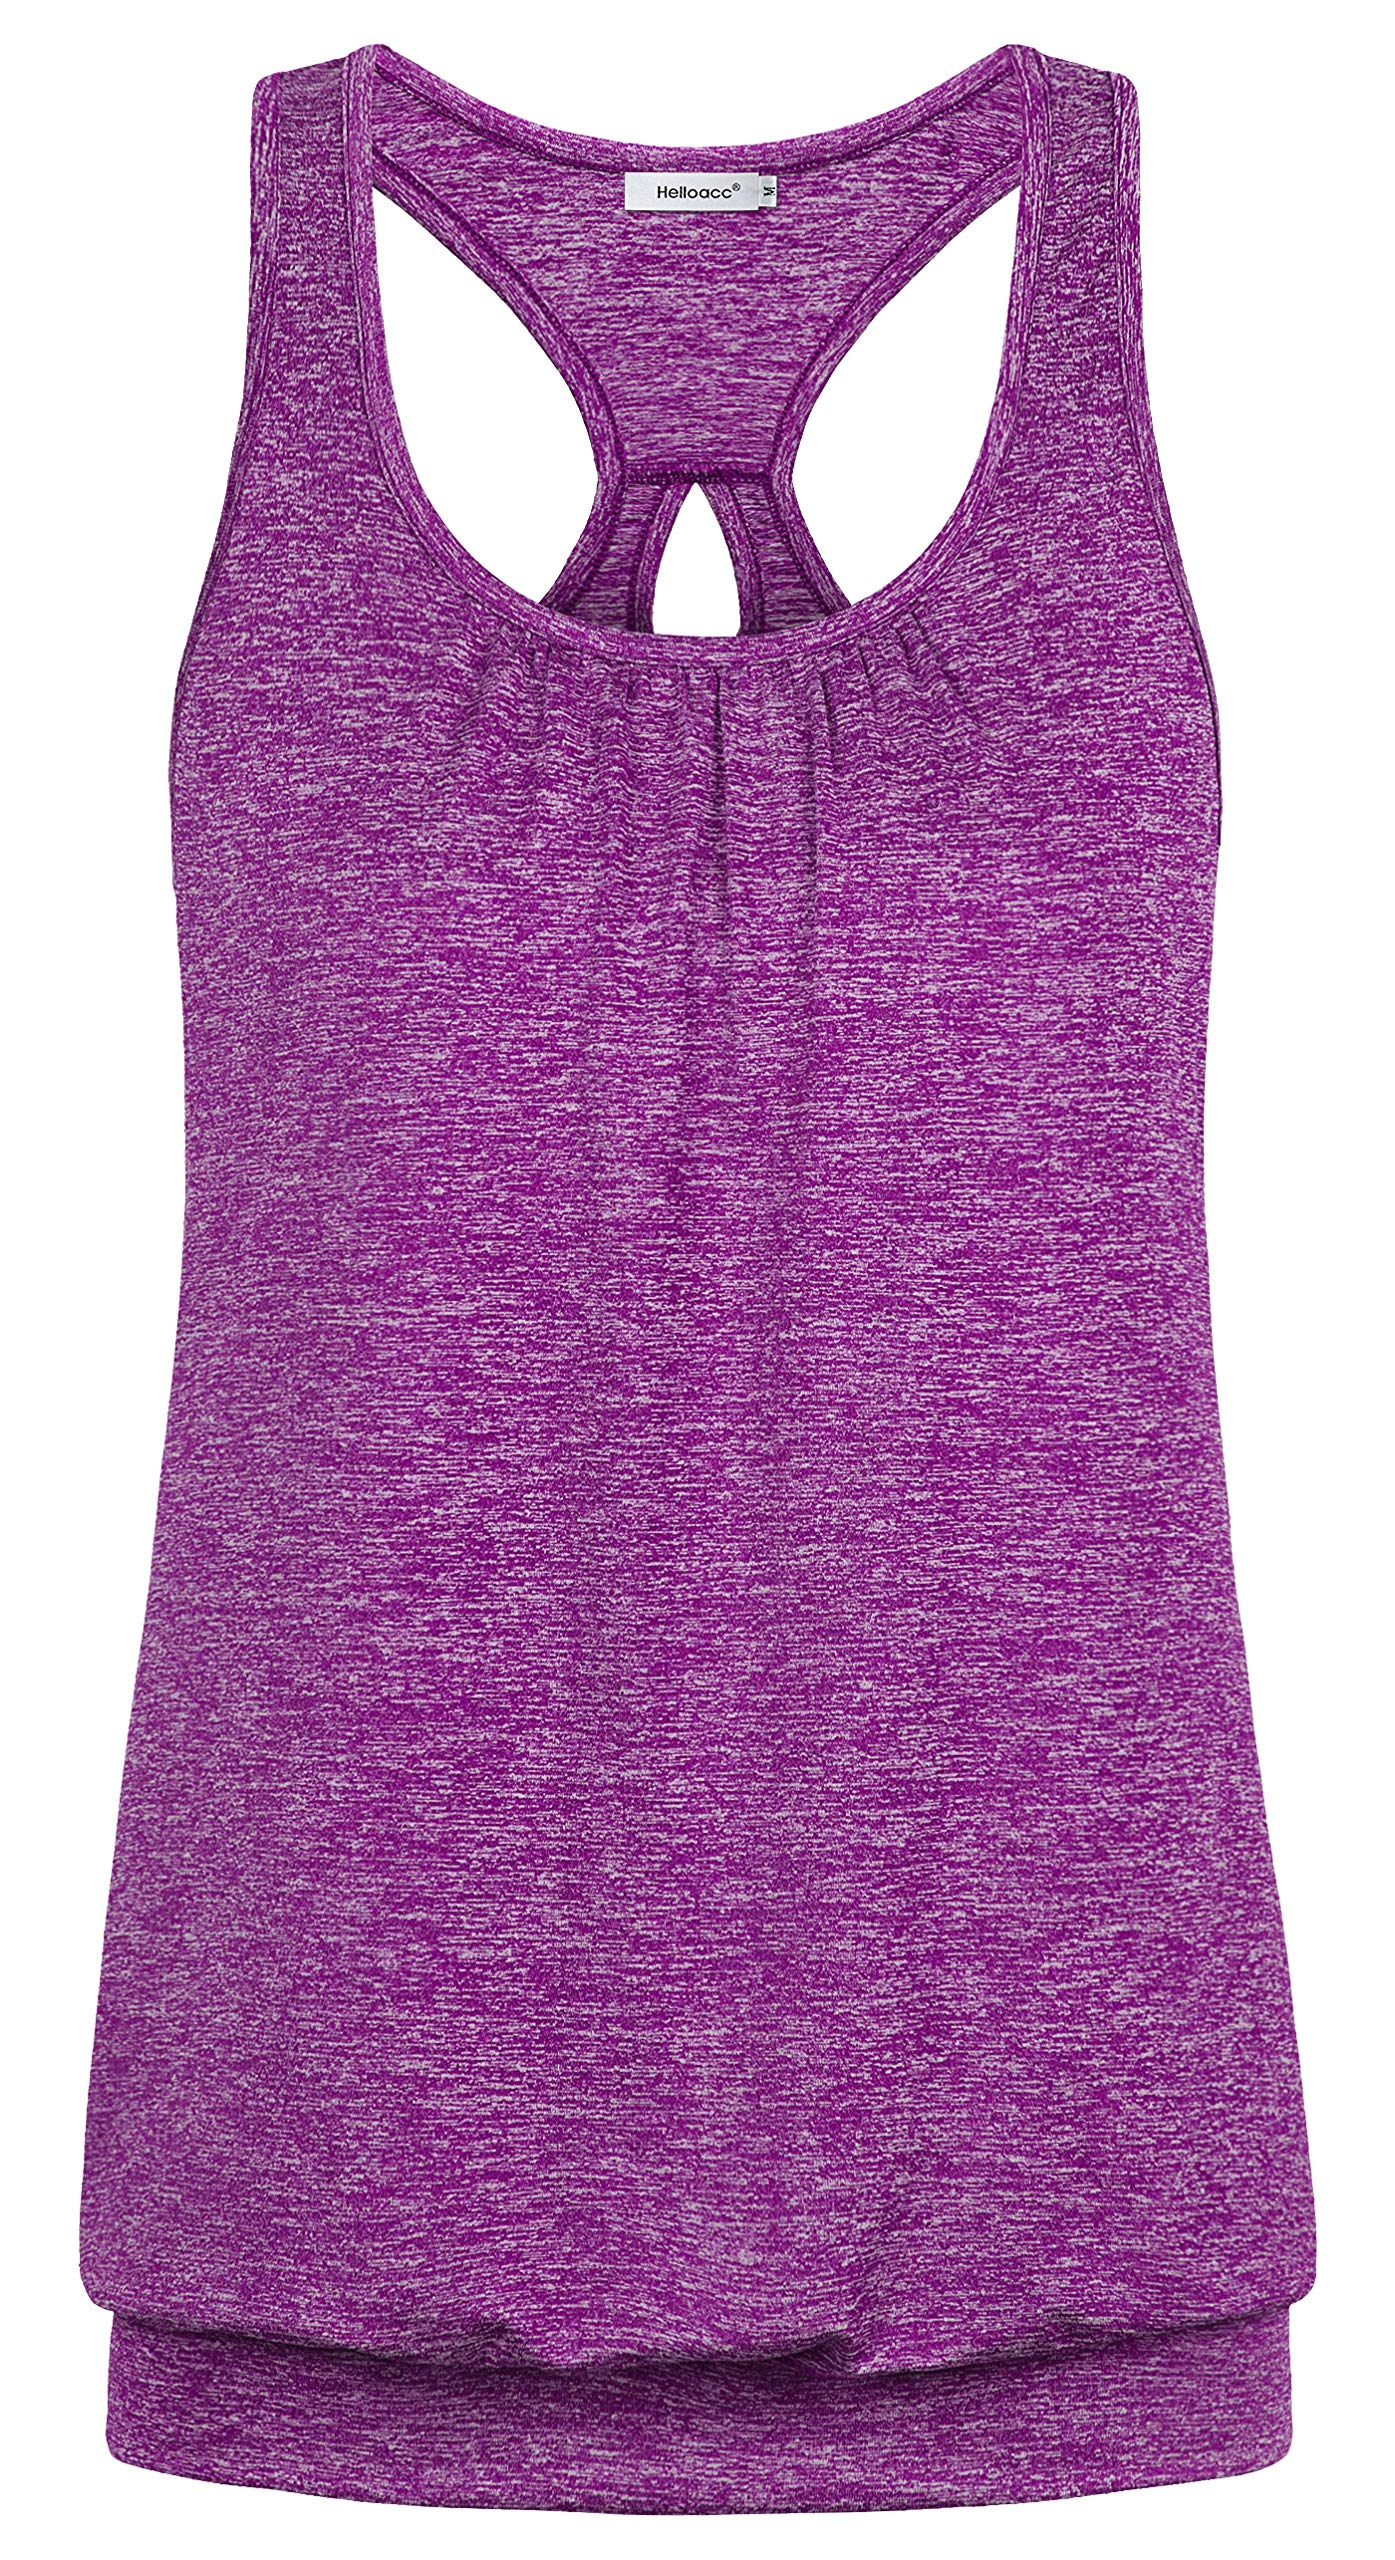 Helloacc Womens Fitness Tank Tops Shirts,Juniors Sleeveless Knitting Shirts and Blouses for Workout Summer Trainning Dressy Tunic Tee Hanky Hem Yoga Tank Tops Chic Stylish Indoor Sports Camis Purple L